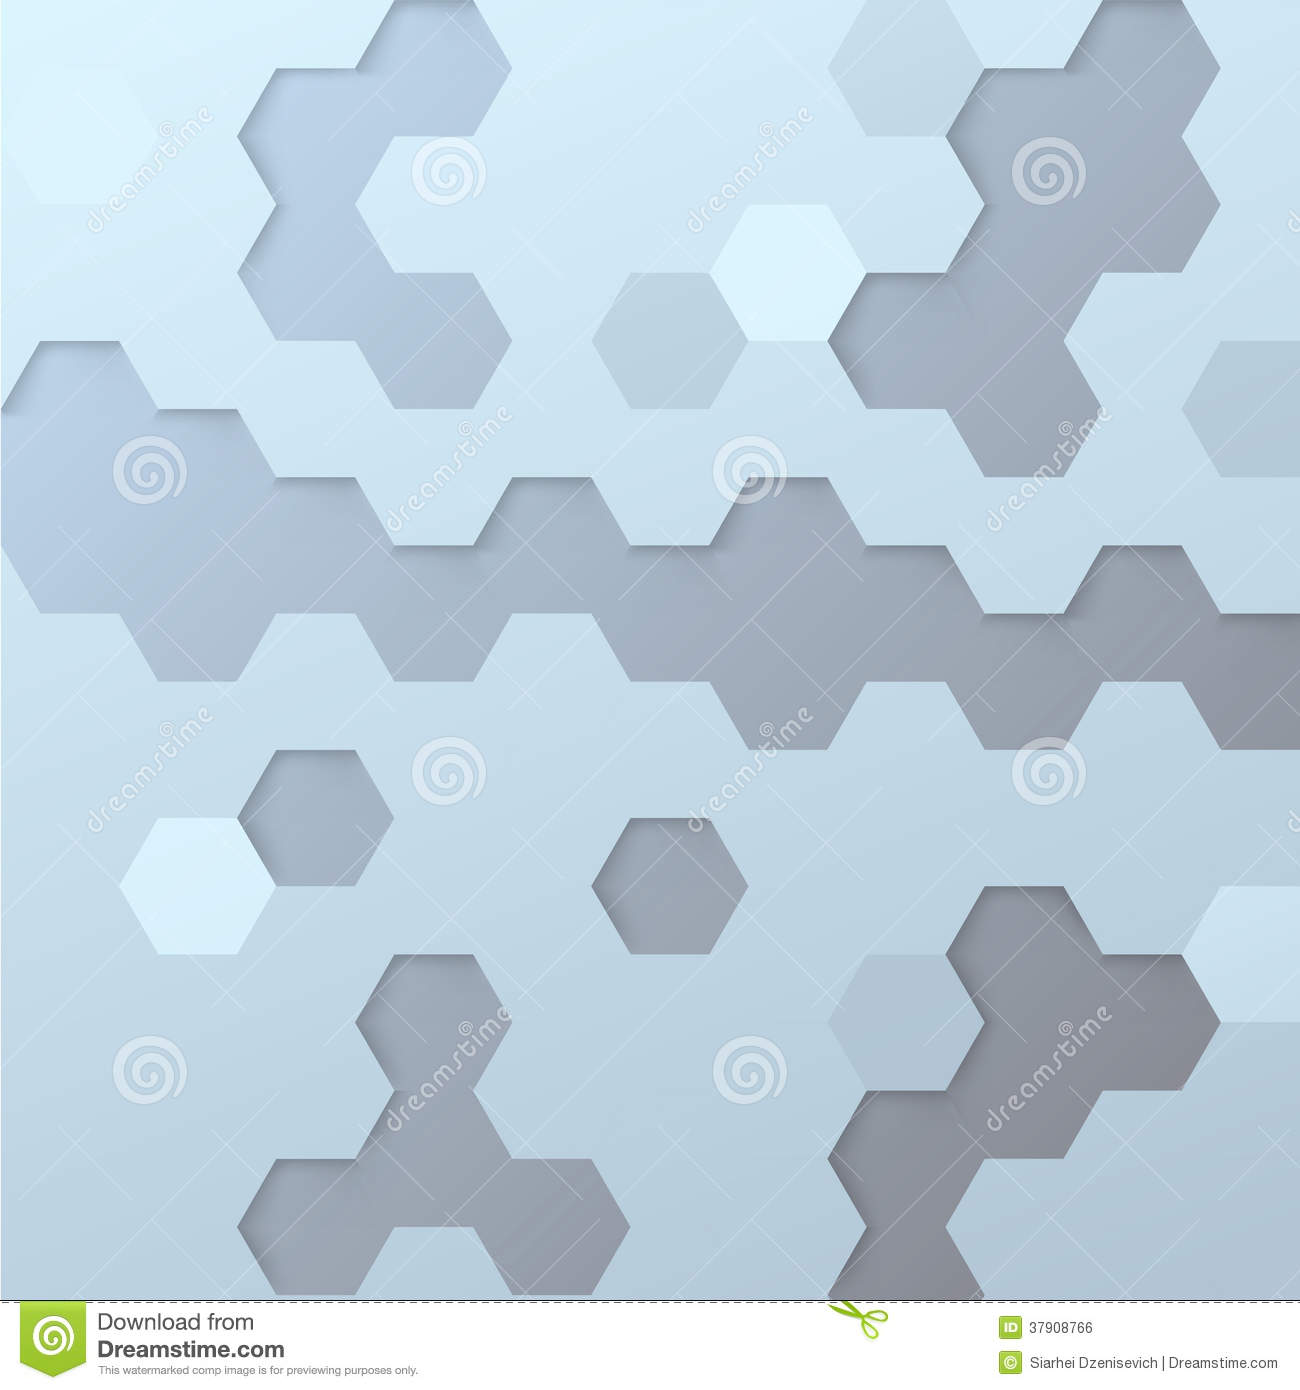 Hexagon tile background template stock vector image 37908766 hexagon tile background template pronofoot35fo Choice Image